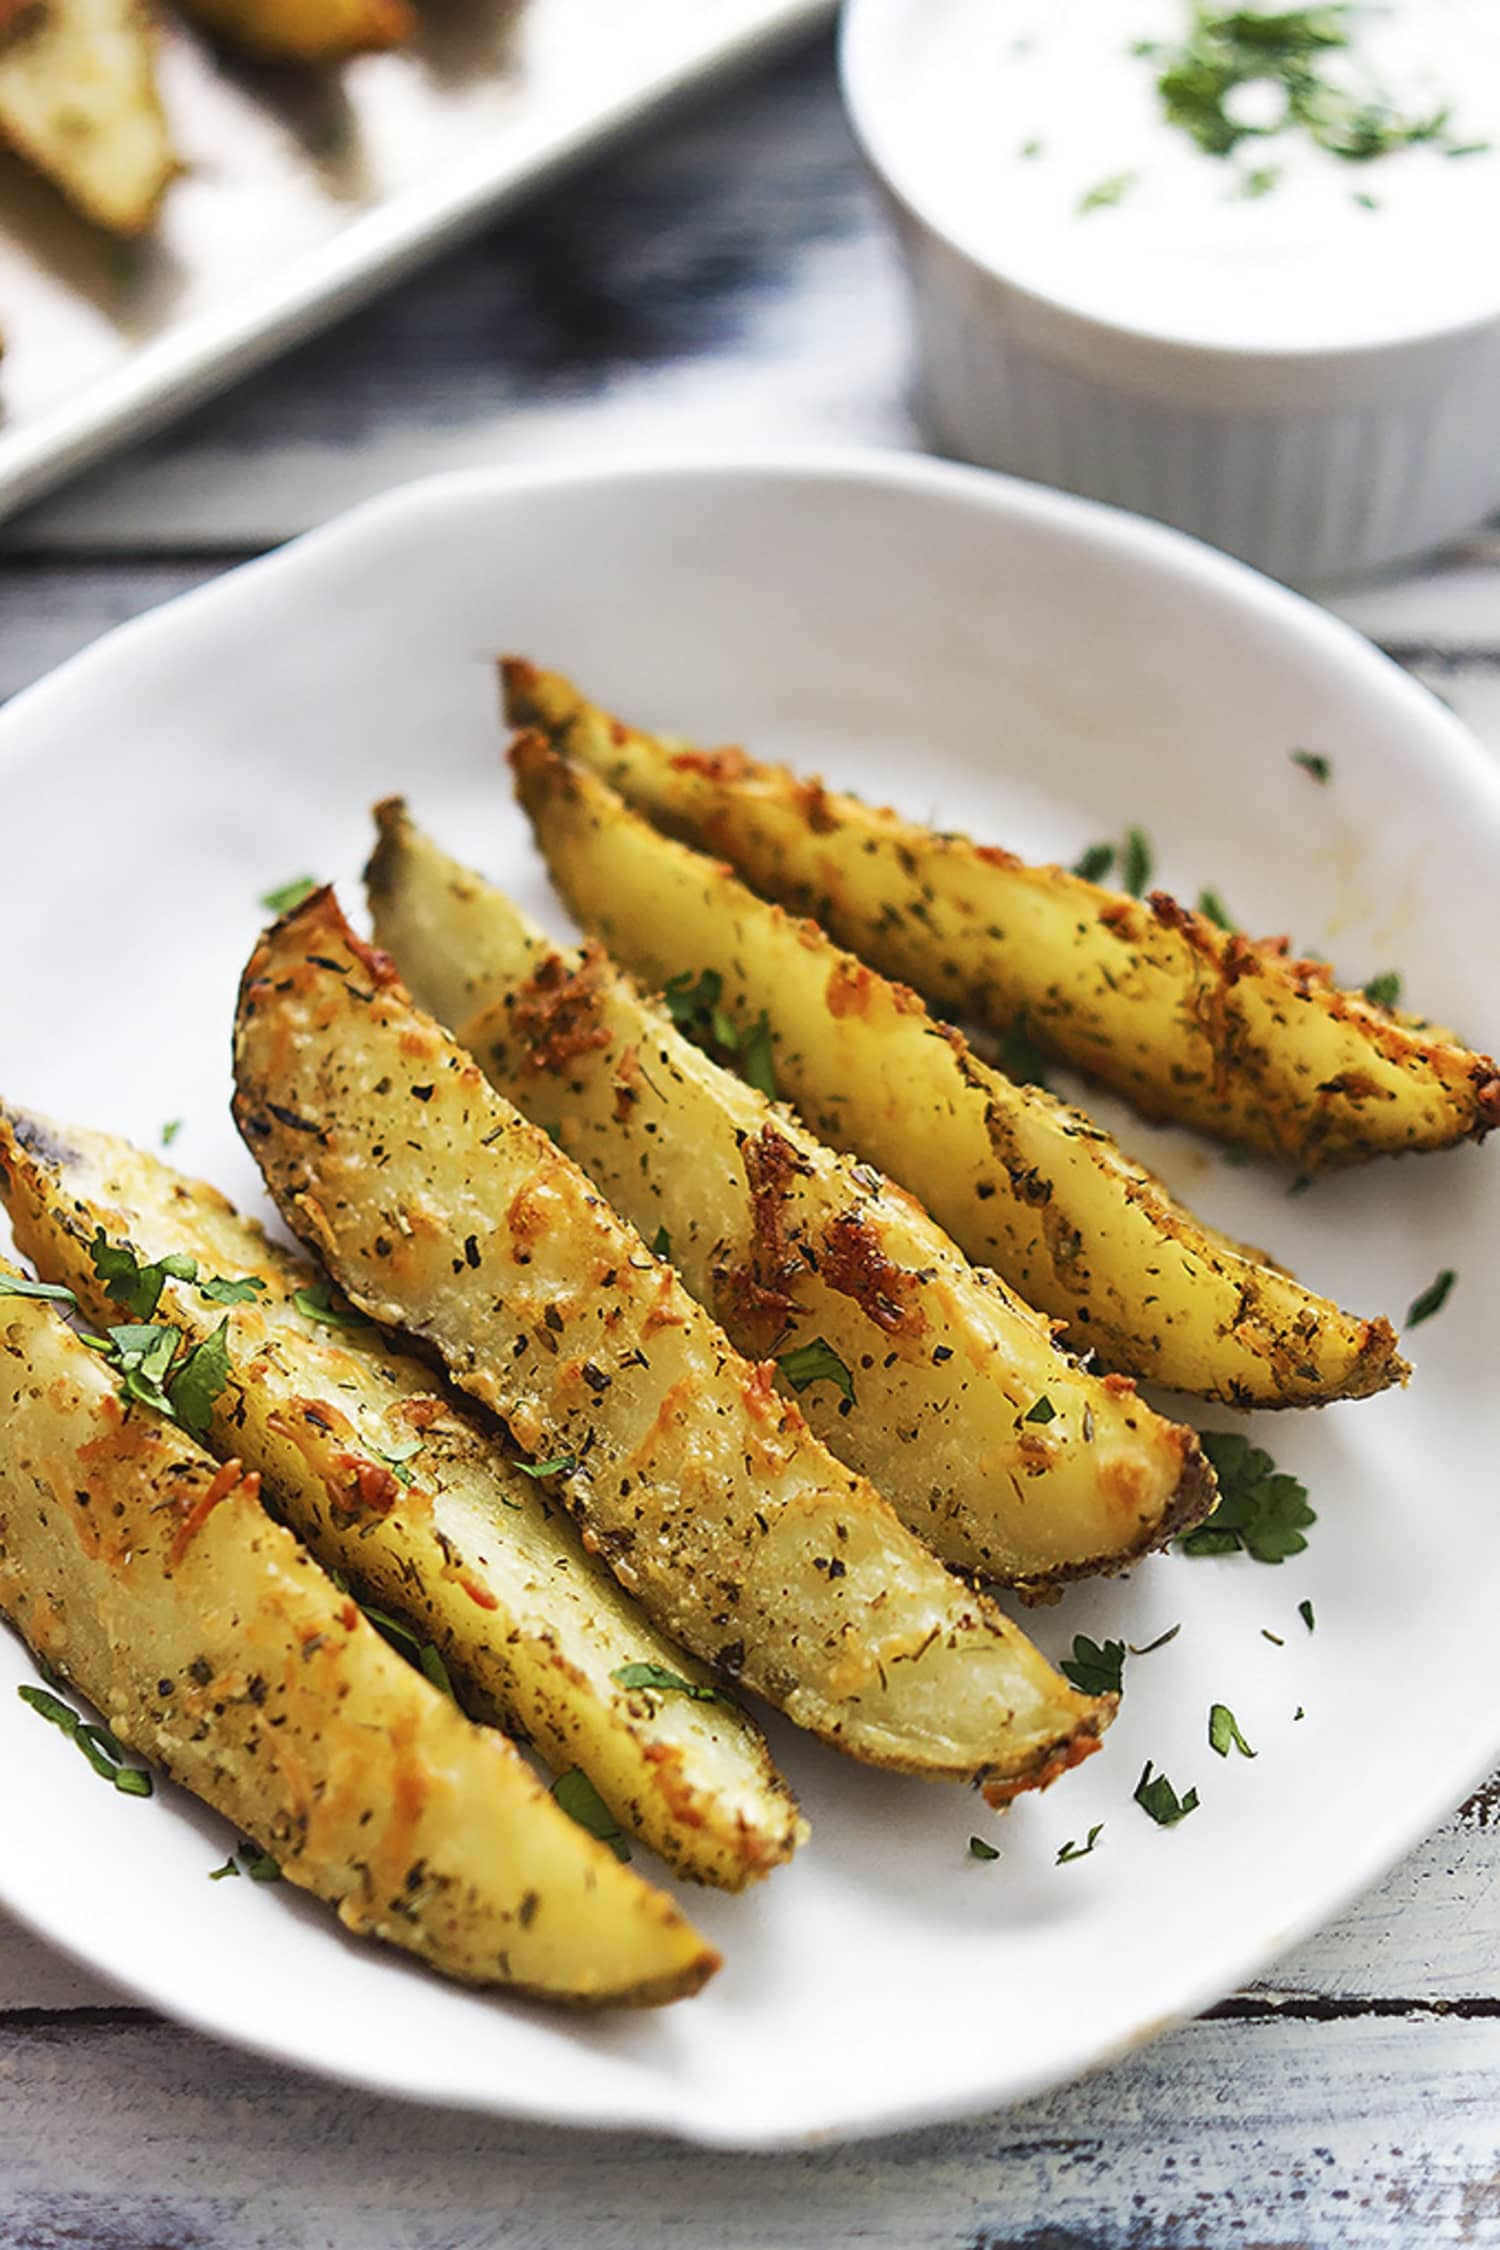 You Need These Baked Garlic Parmesan Potato Wedges in Your Life